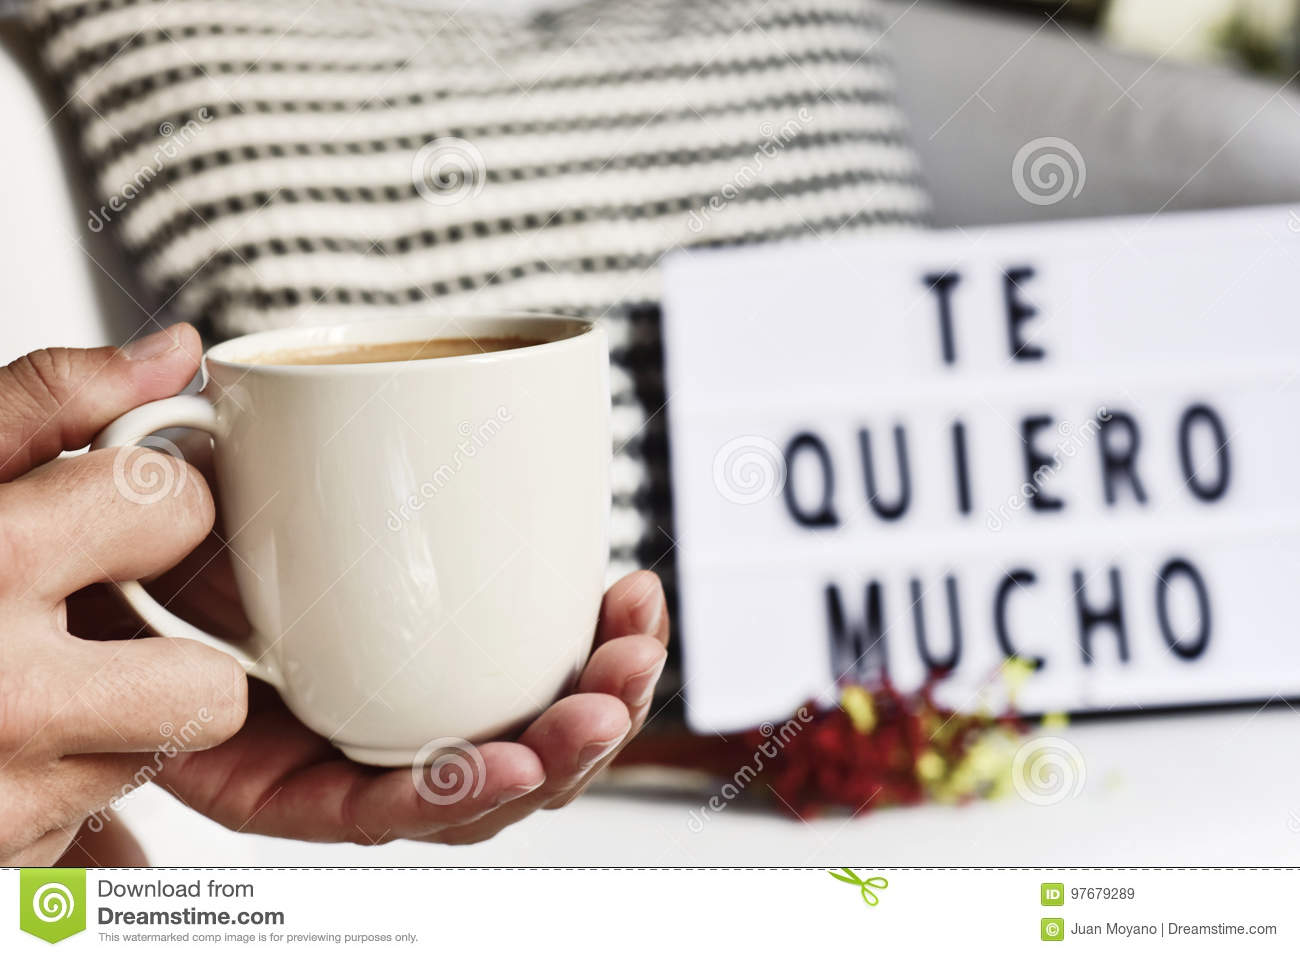 Coffee and text I love you so much in Spanish